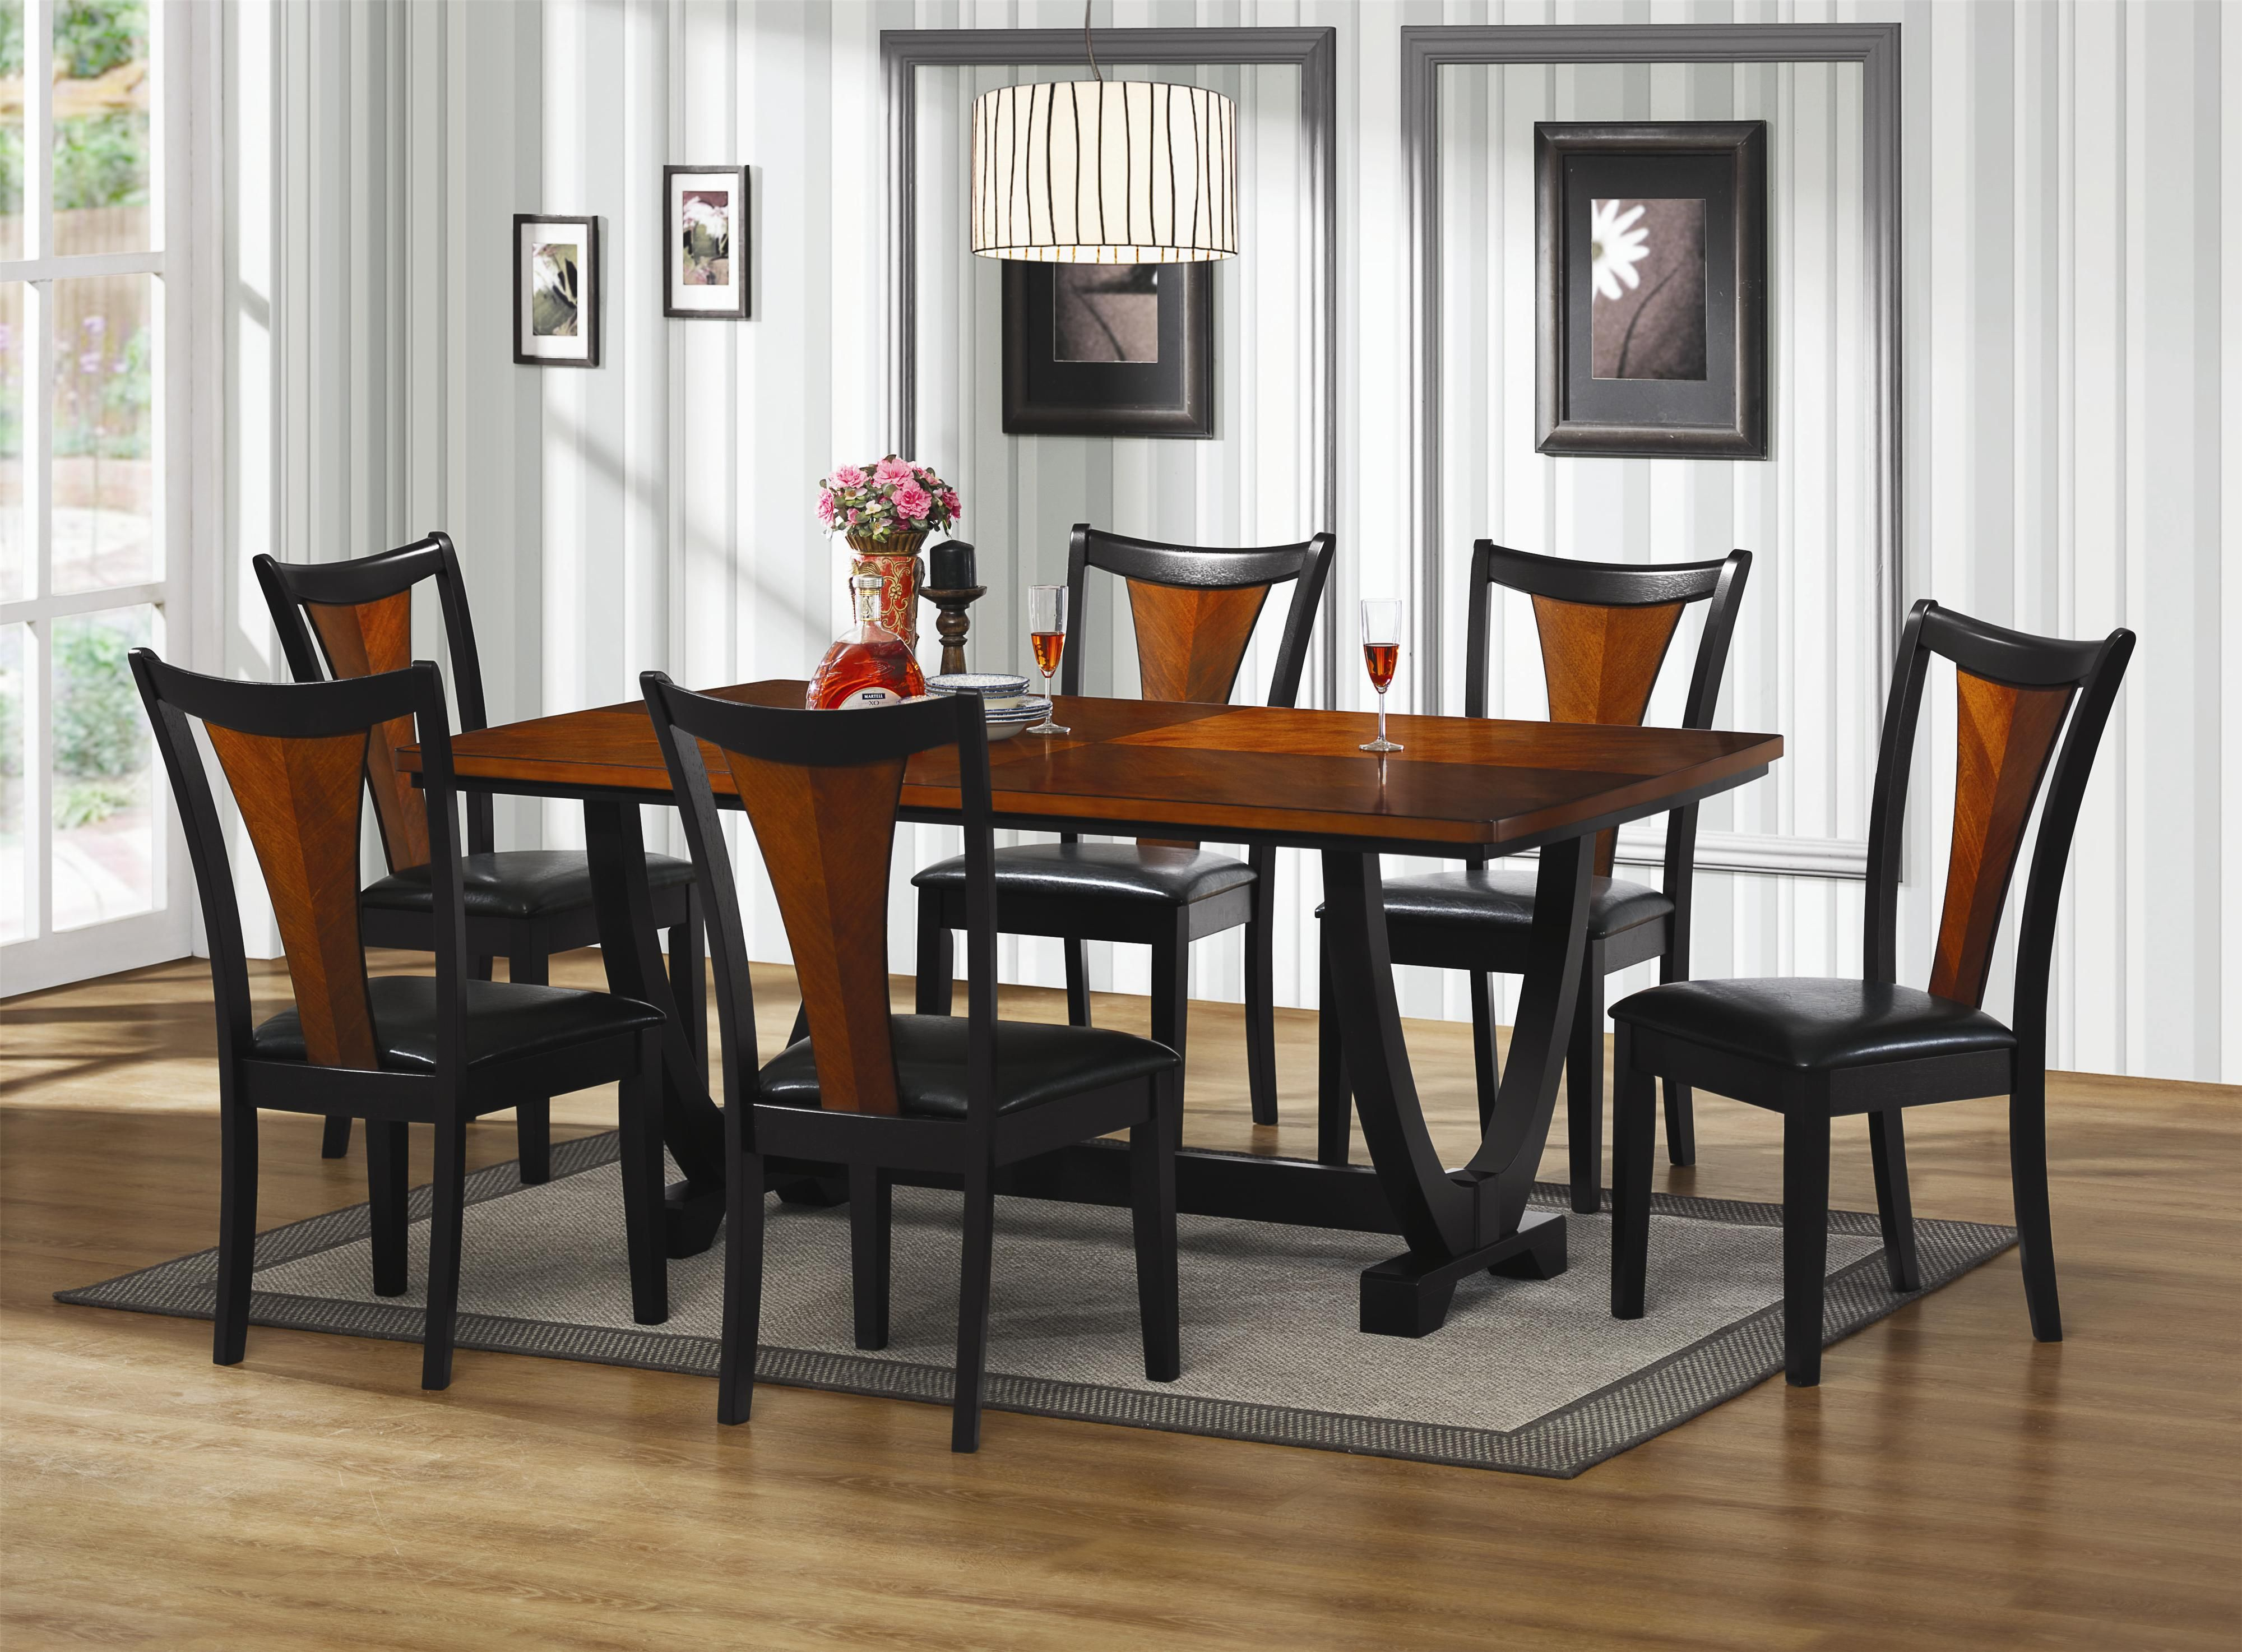 Cheap Dining Room Tables Long Country Dining Table Sets With Extraordinary Dining Room Tables For Sale Cheap 2018